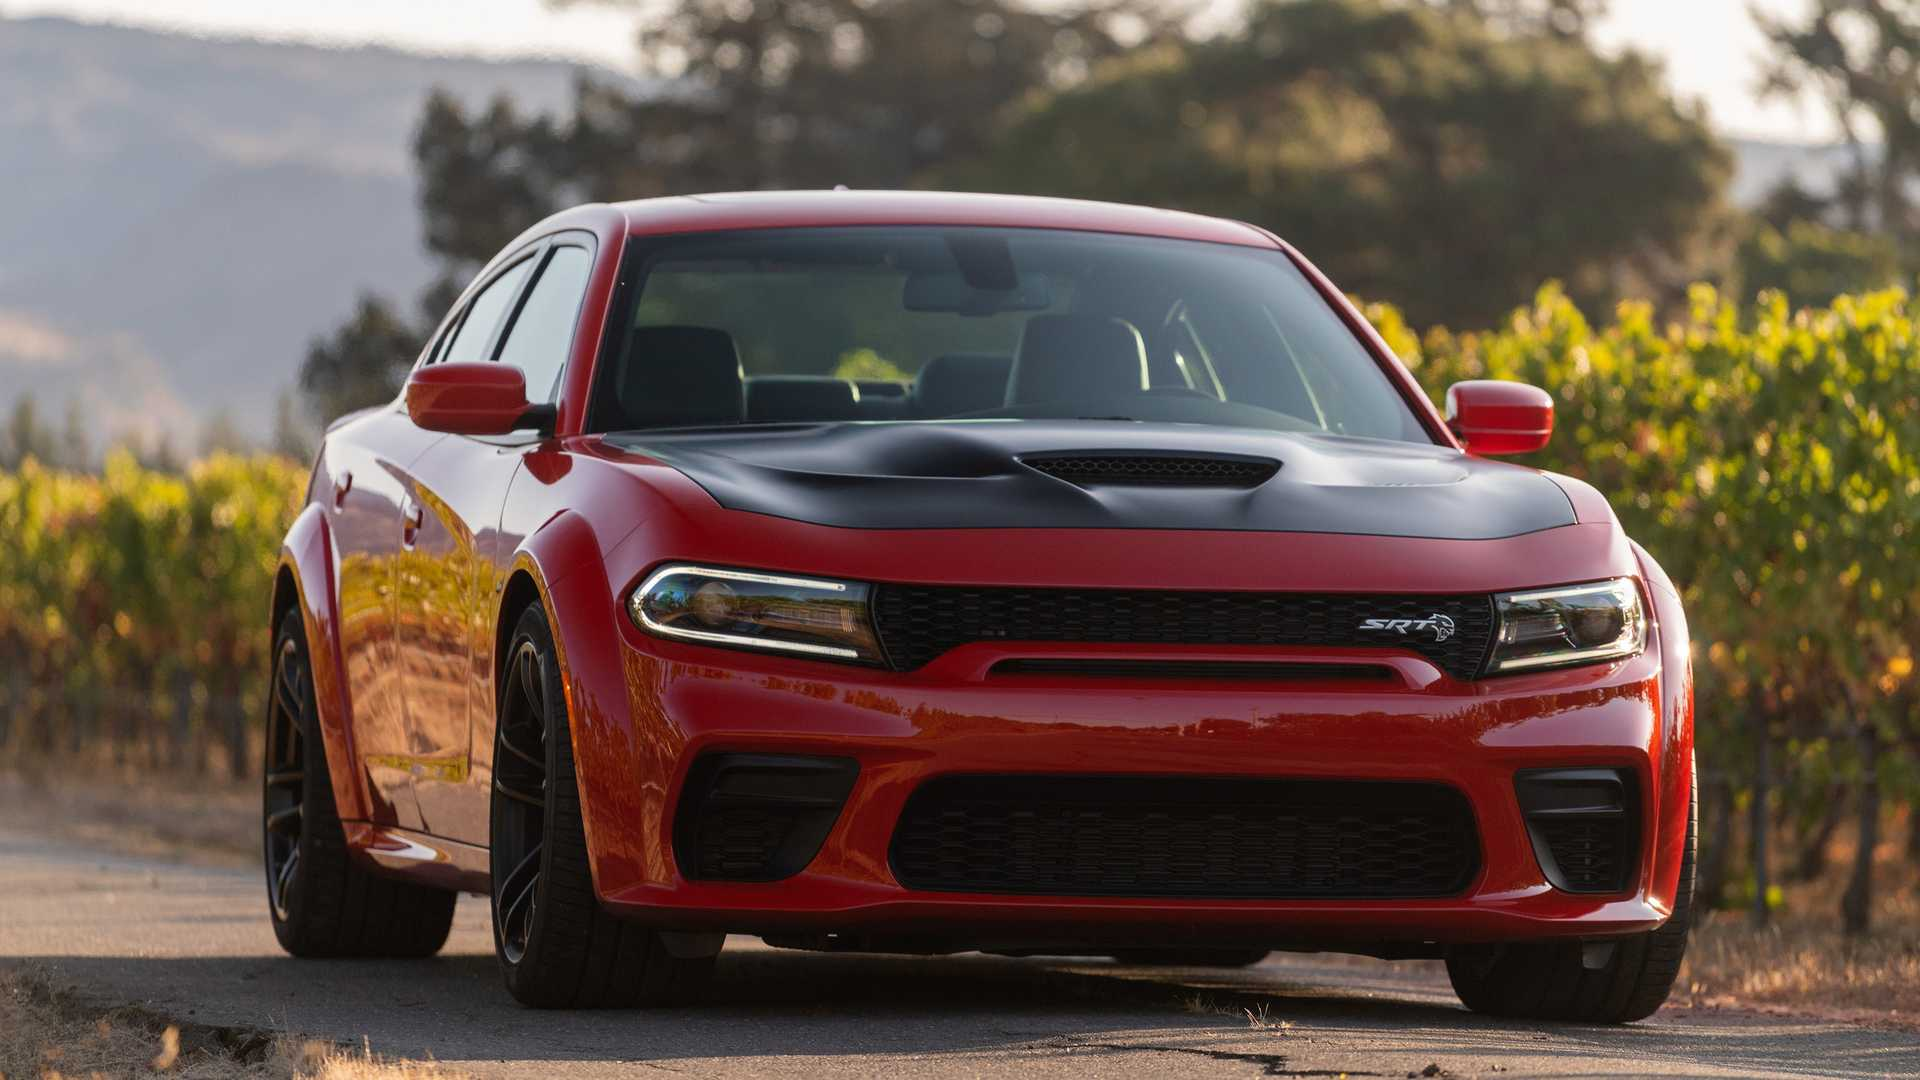 Dodge Charger Stealing Sales Even From Camaro And Mustang